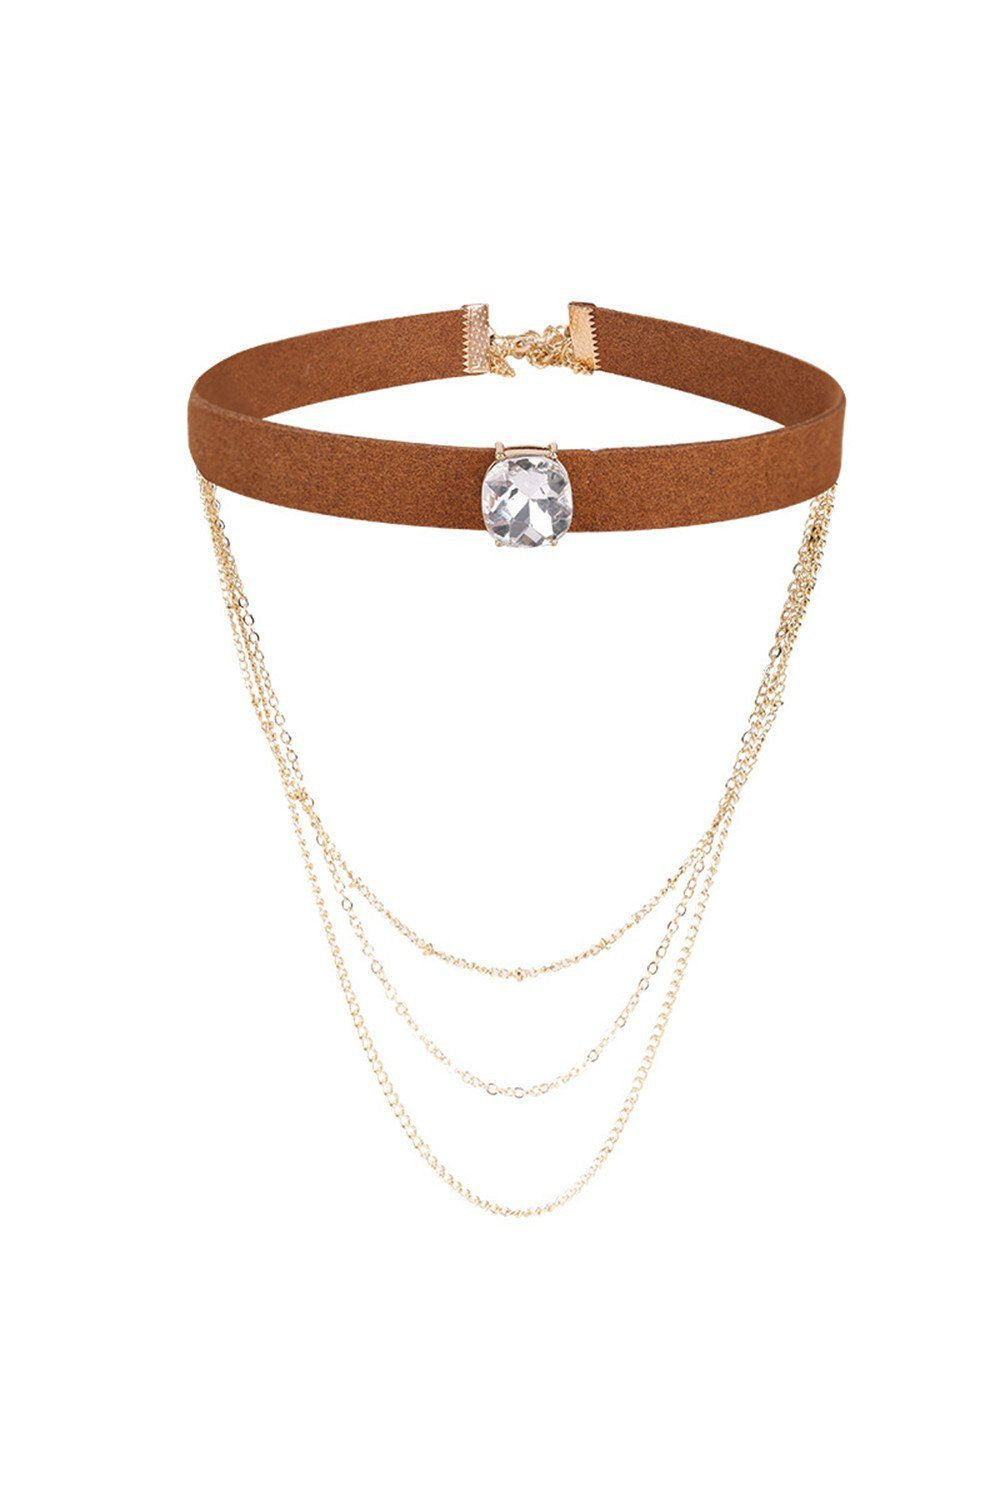 Layered Faux Suede Brown Chain Choker - Ciduire